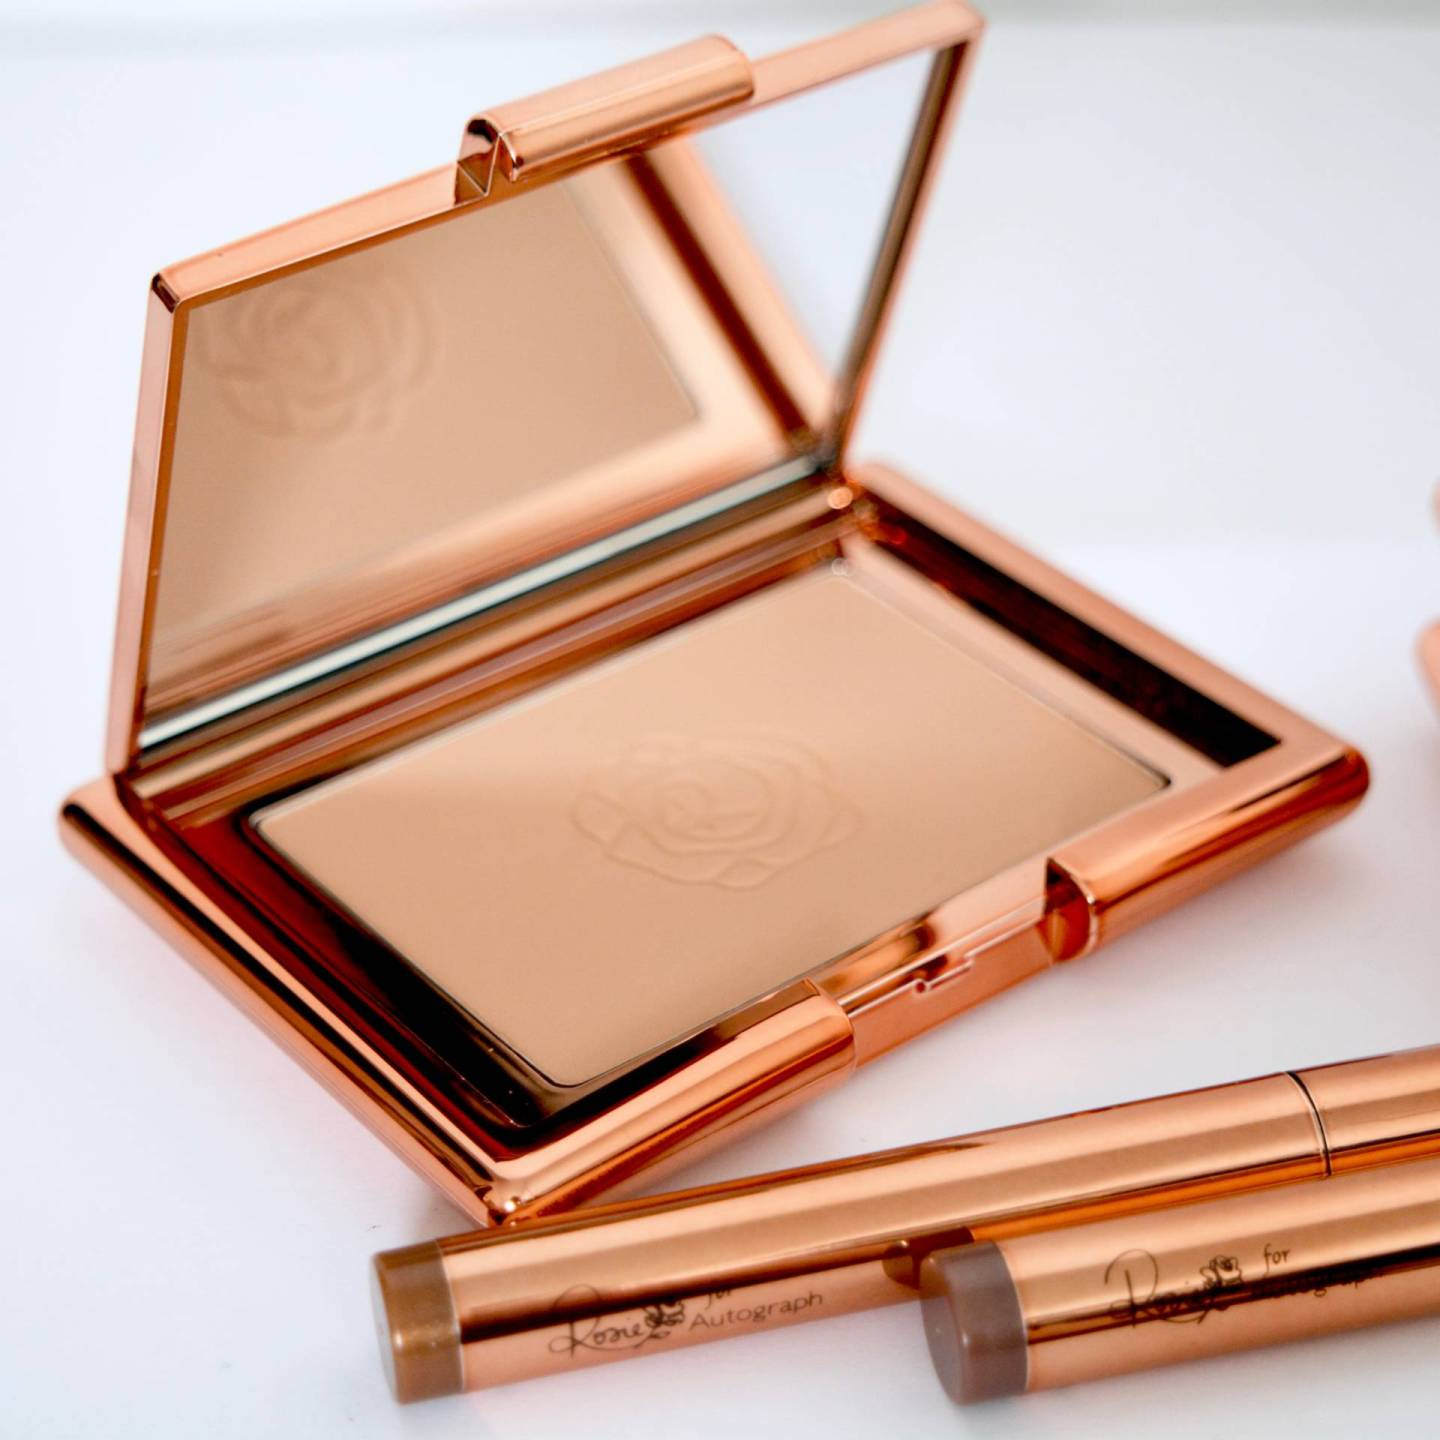 Rosie by Autograph Bronzer - beautiful rose gold packaging!